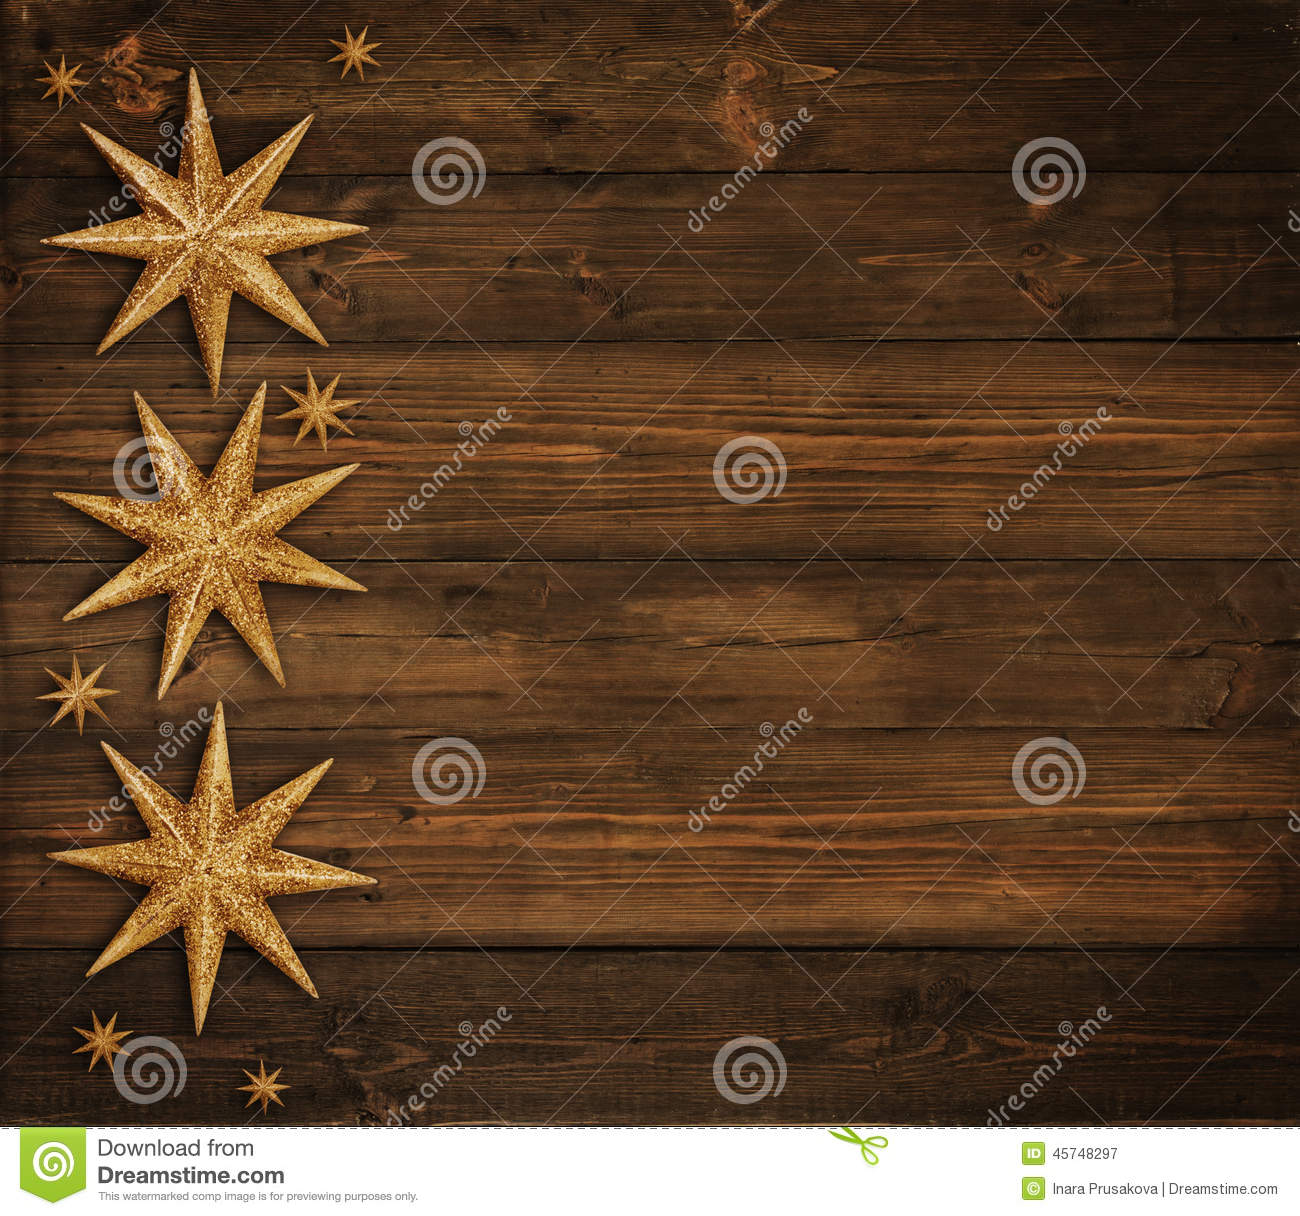 Christmas Wooden Background, Golden Stars Decoration, Brown Wood